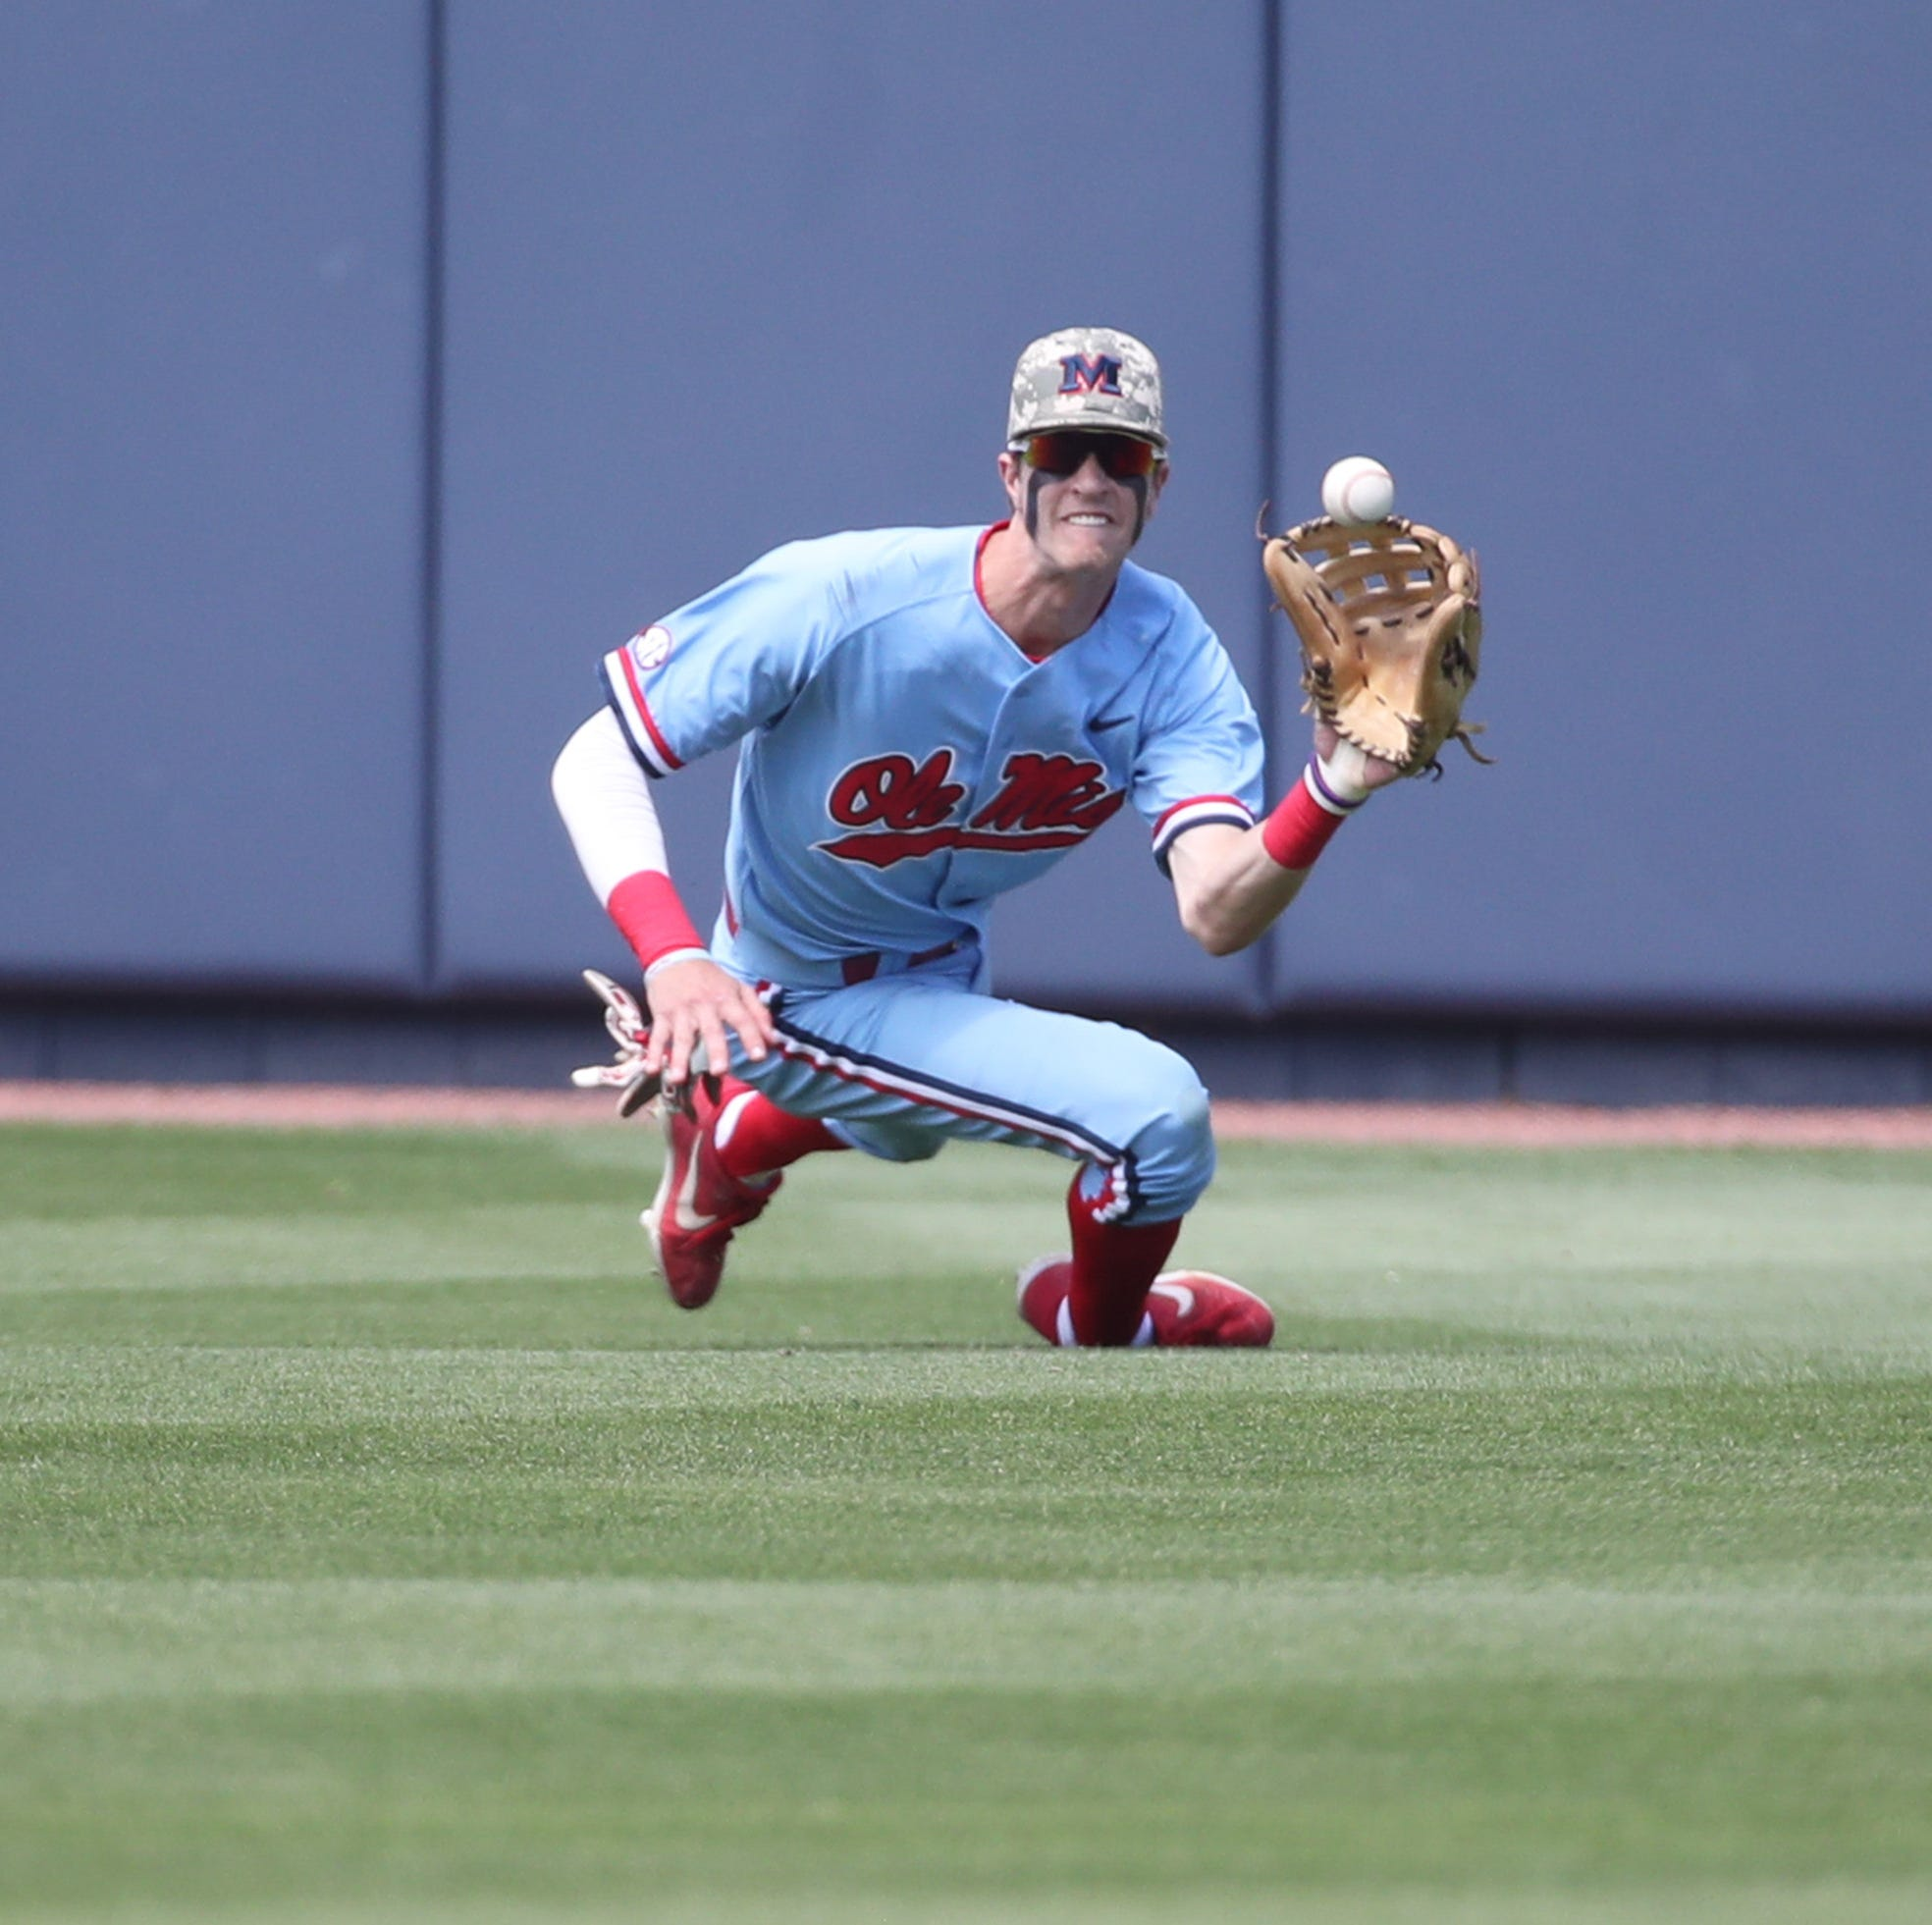 Ryan Olenek missed the MSU series with an illness. But the Ole Miss CF also missed so much more